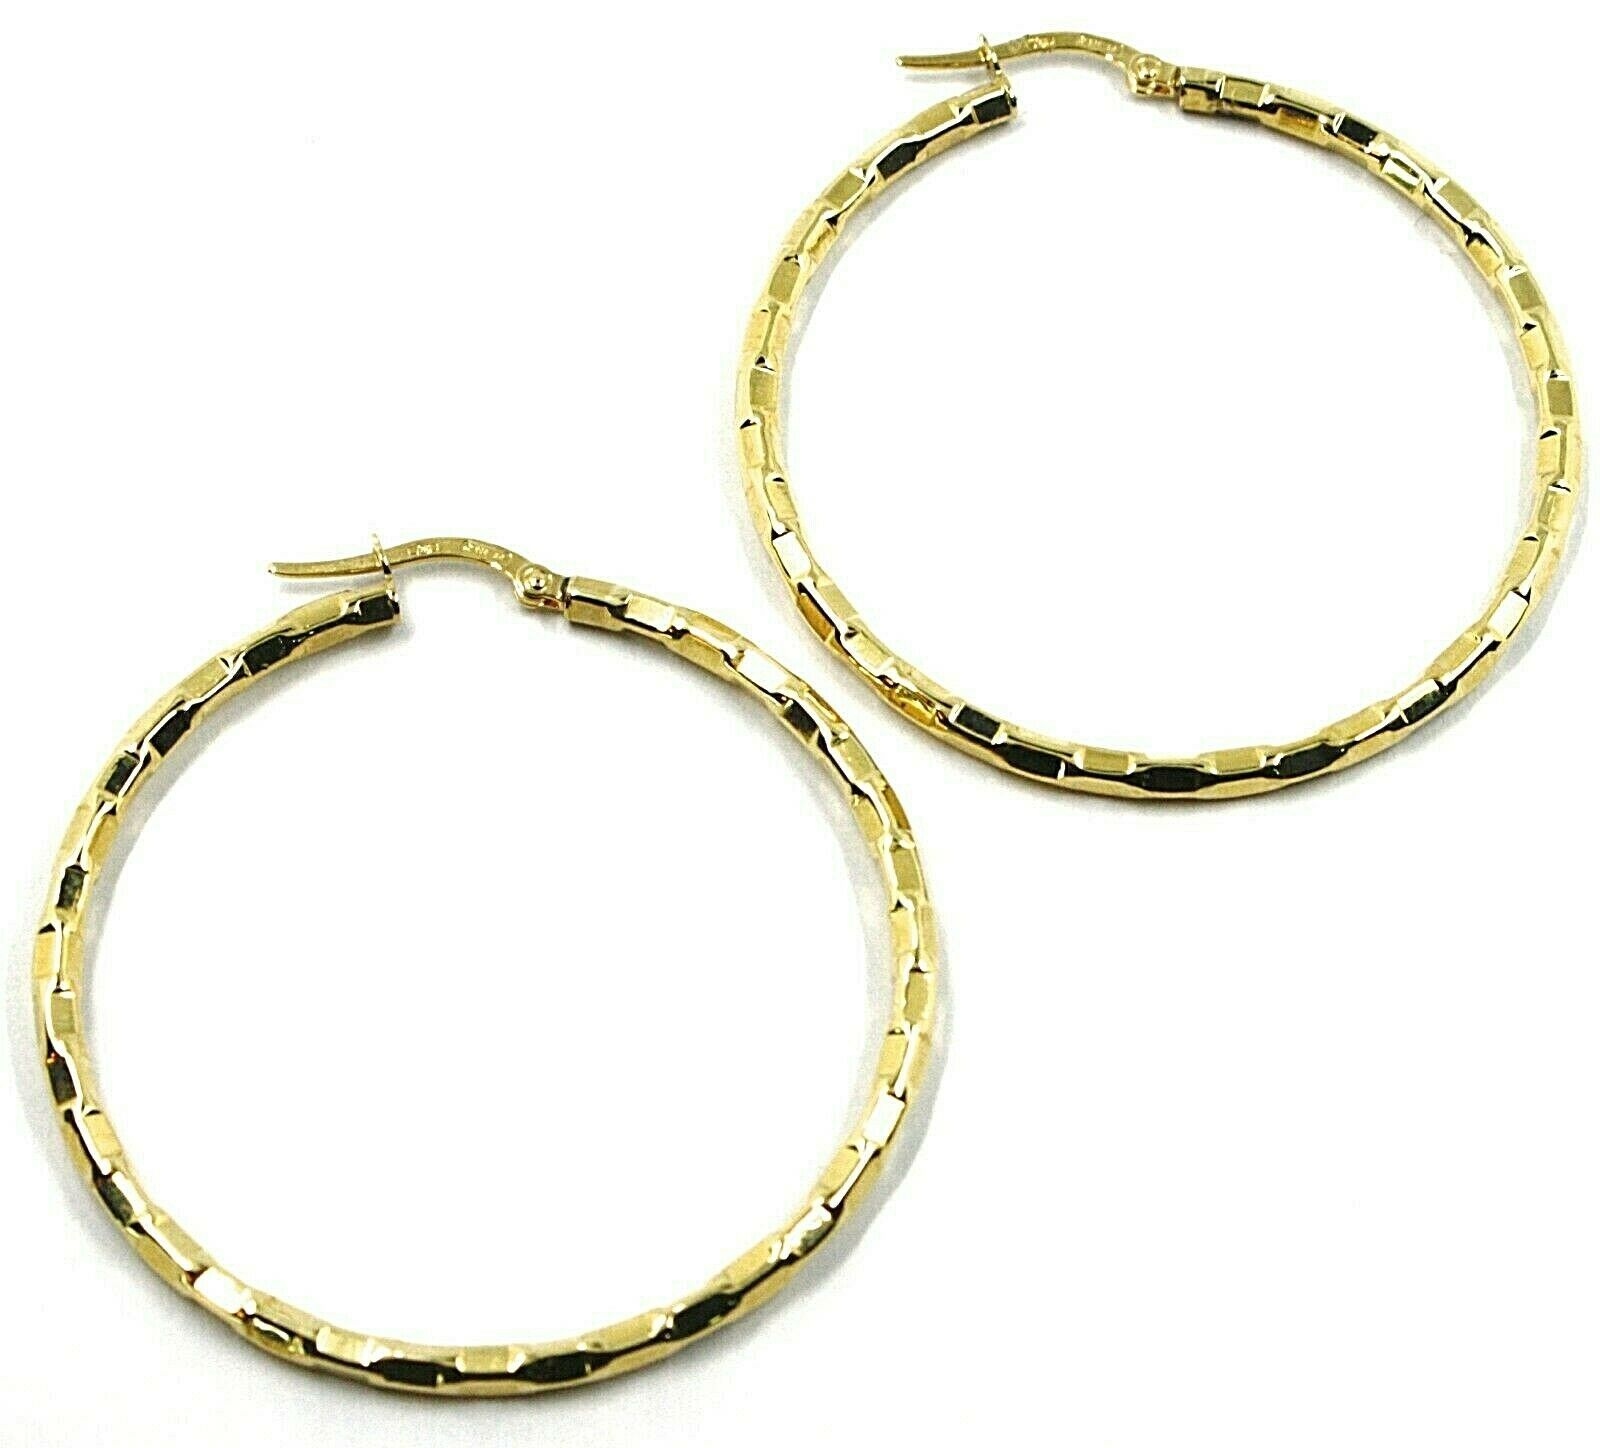 18K YELLOW GOLD CIRCLE HOOPS PENDANT EARRINGS, 4.5 cm x 3 mm WORKED CHECKERED